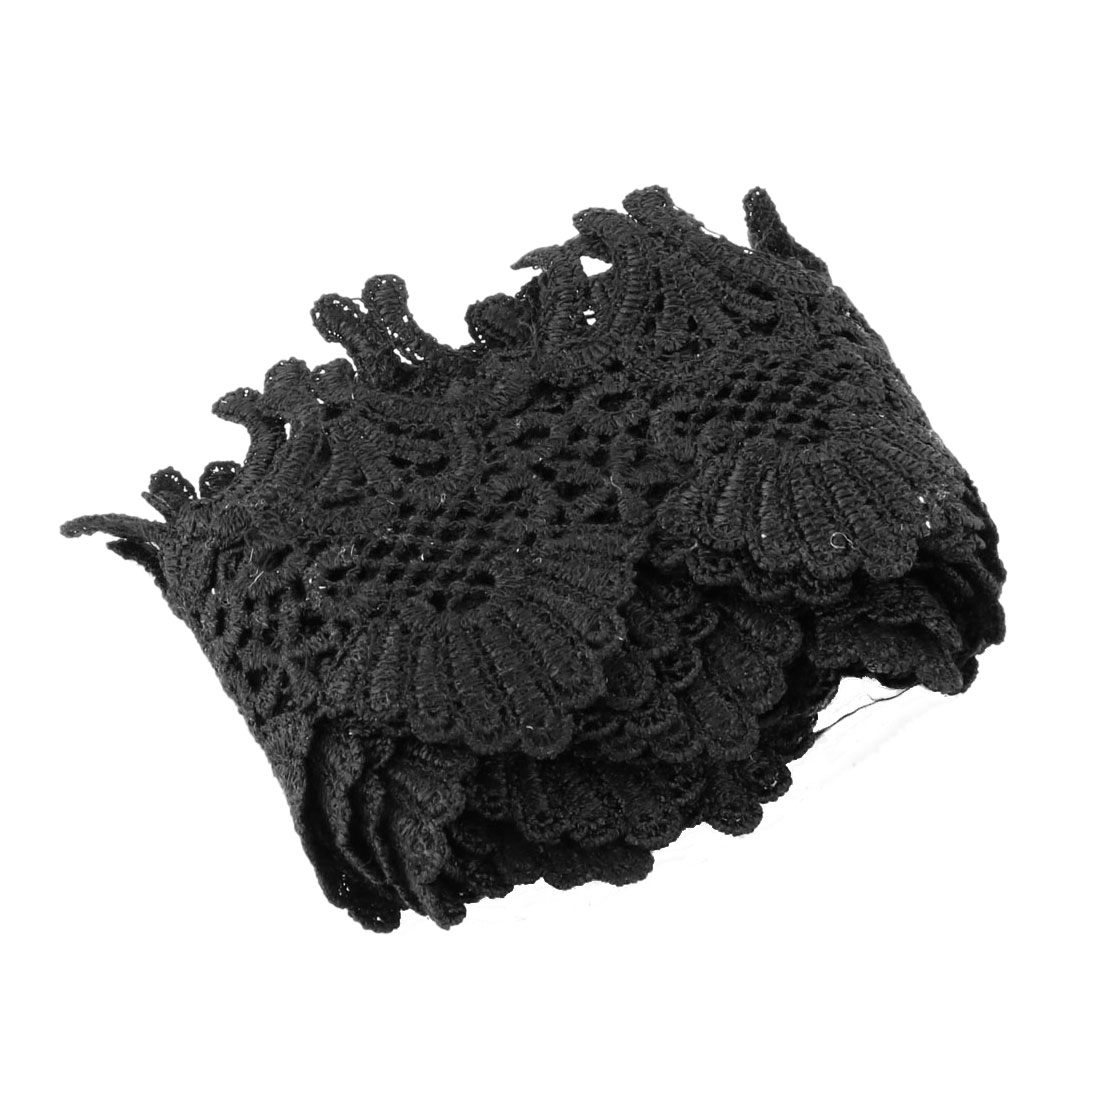 Home Polyester DIY Handicraft Clothes Collar Decor Sewing Lace Trim Black 2.2 Yards